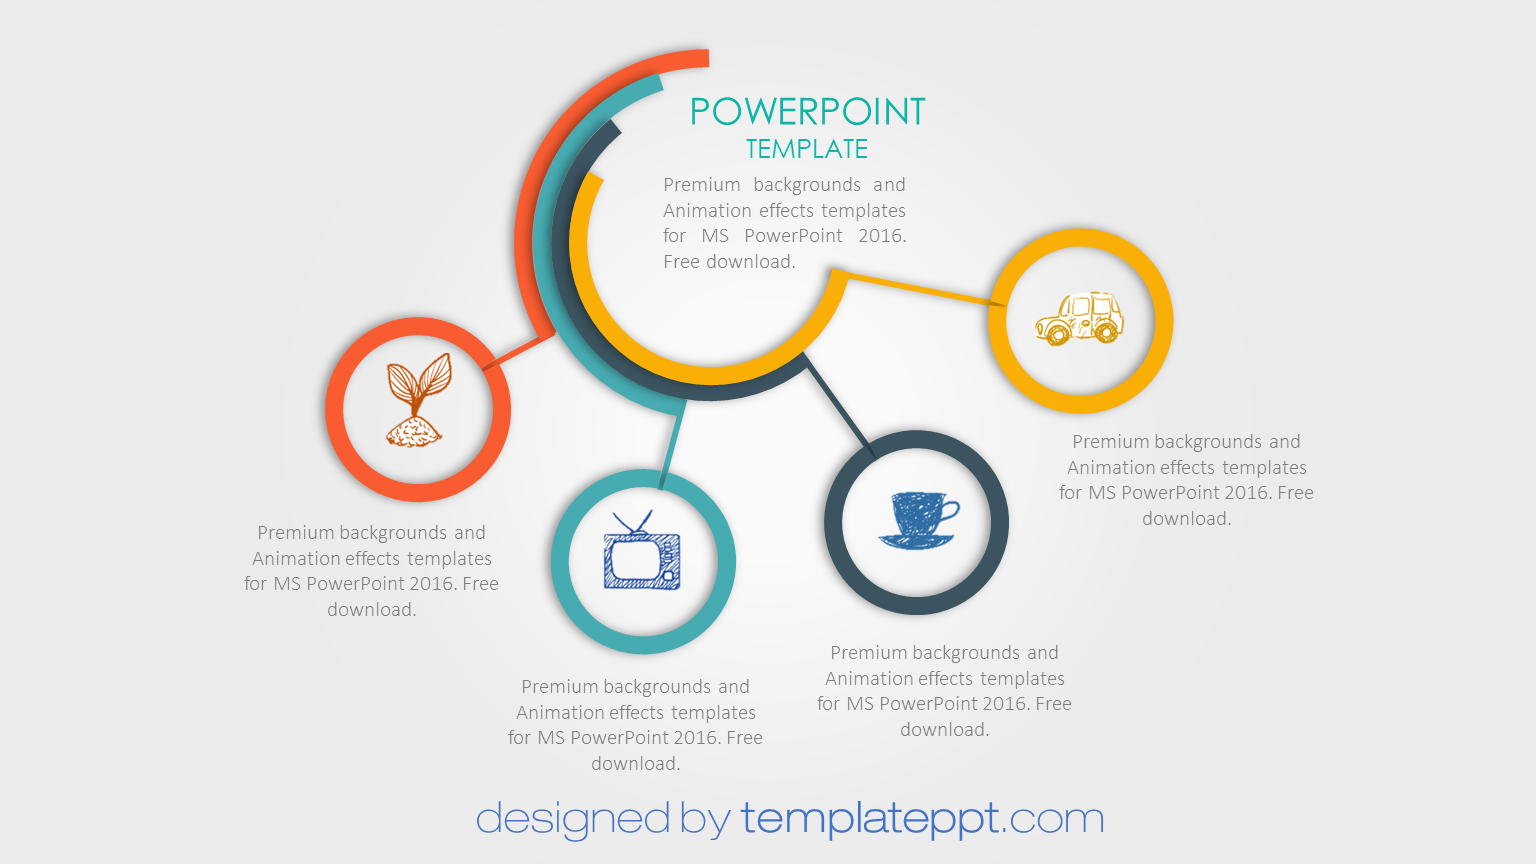 Professional powerpoint templates free download 2016 powerpoint professional powerpoint templates free download 2016 toneelgroepblik Gallery